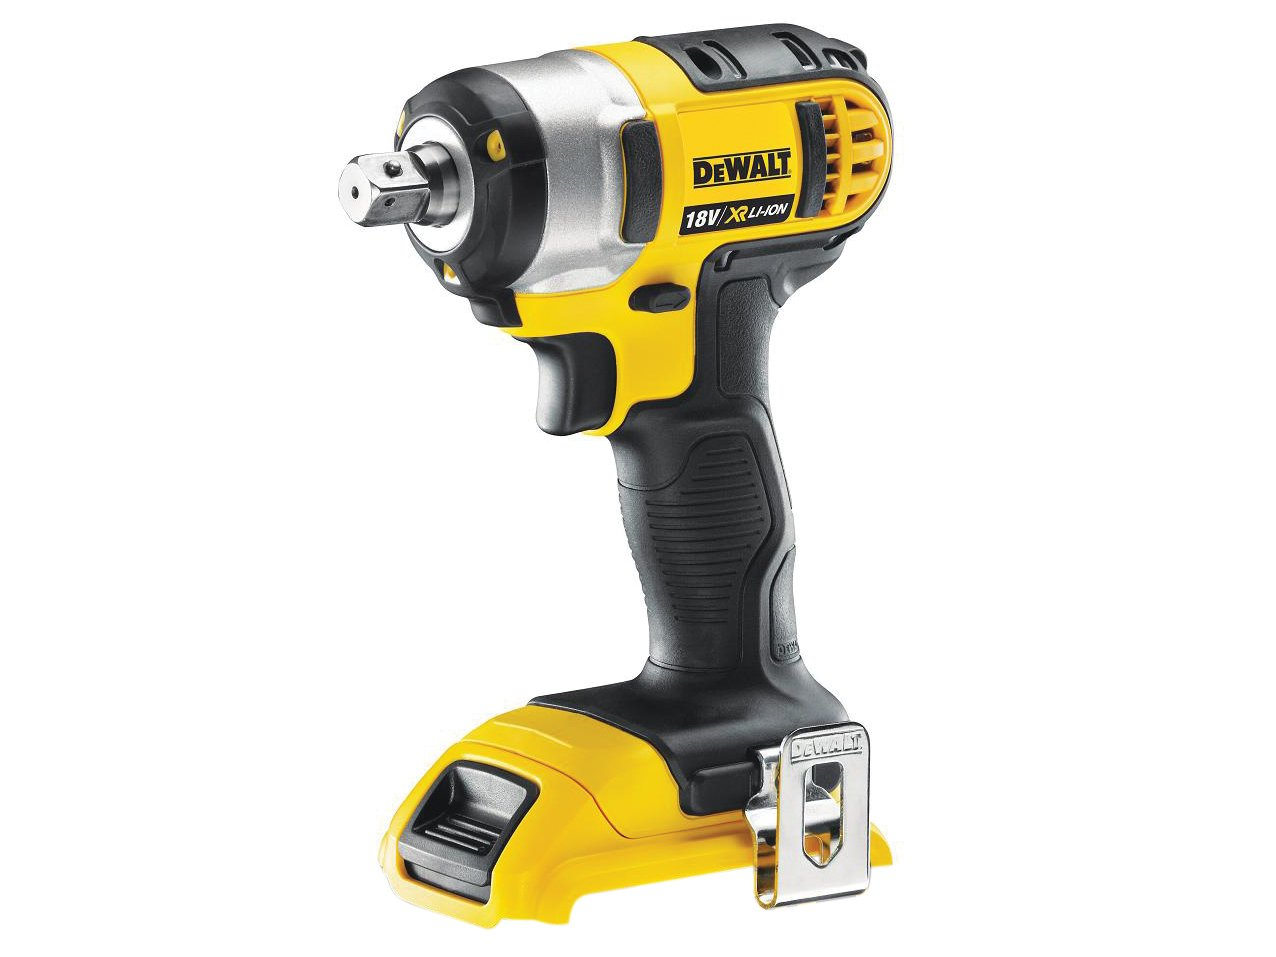 DeWalt 18V XR Lithium-Ion Body Only Compact Impact Wrench DCF880N-XJ